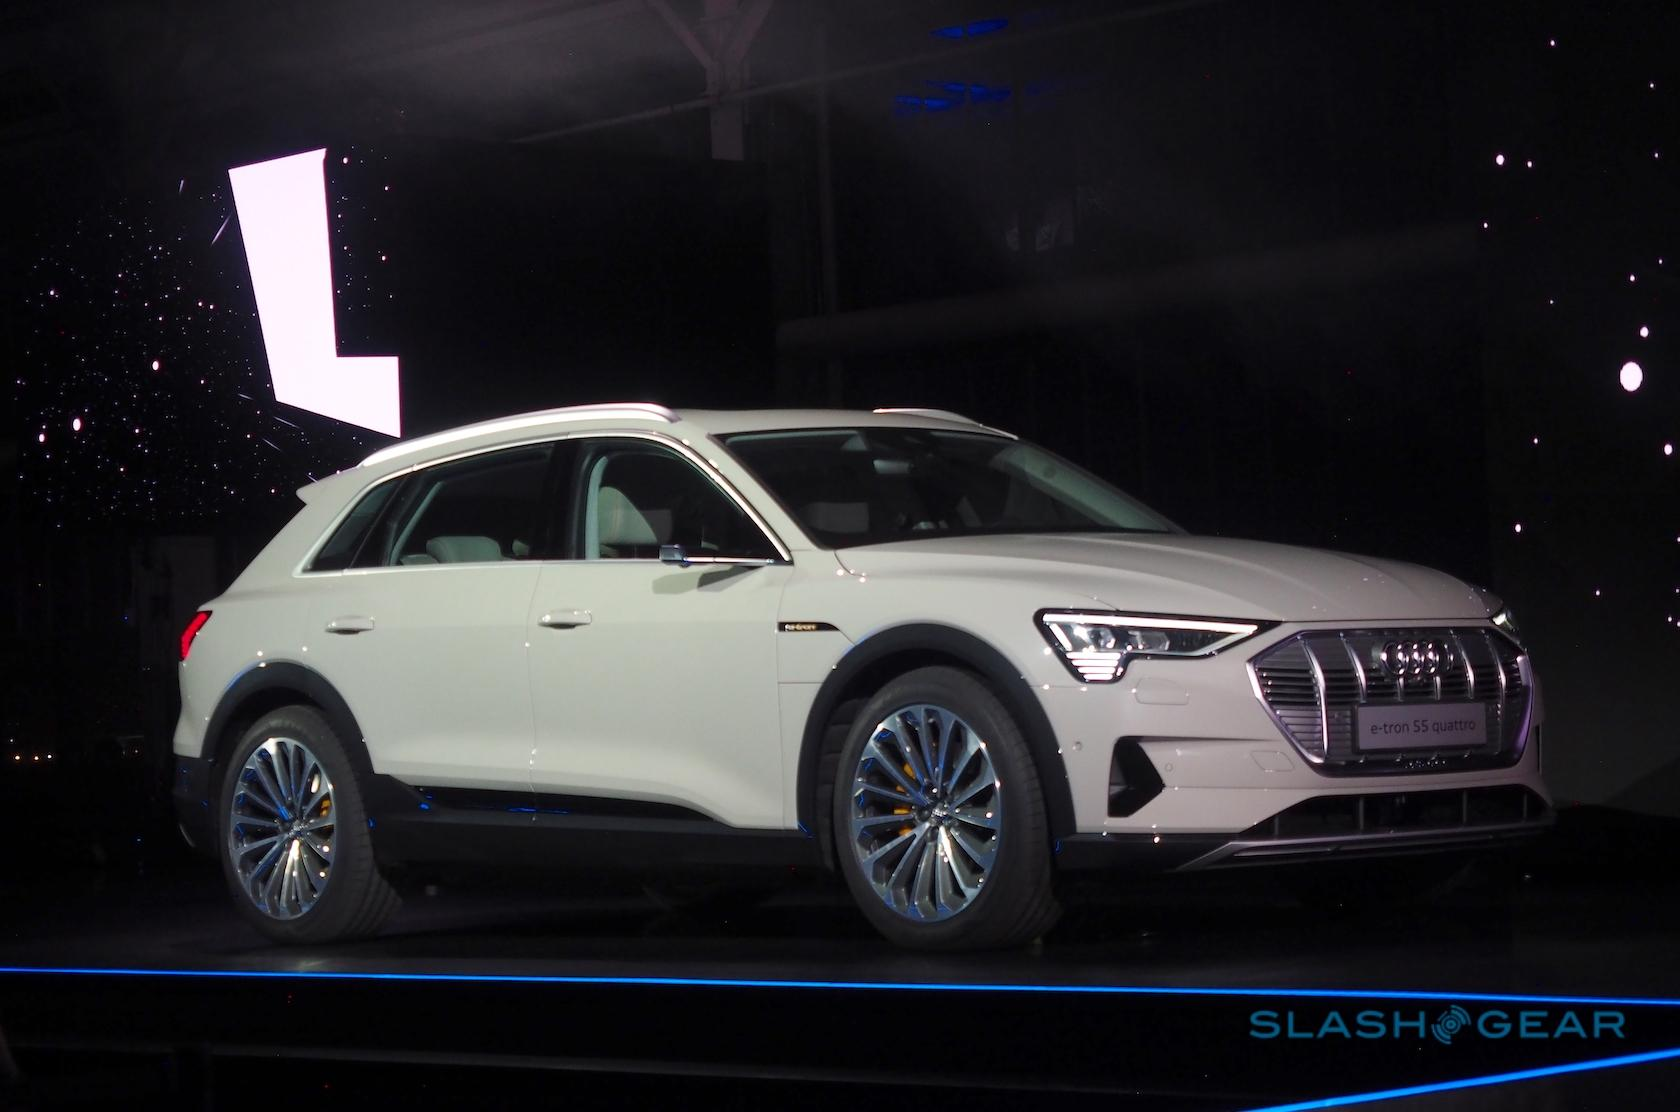 2019 Audi e-tron official: Luxury electric SUV gets priced